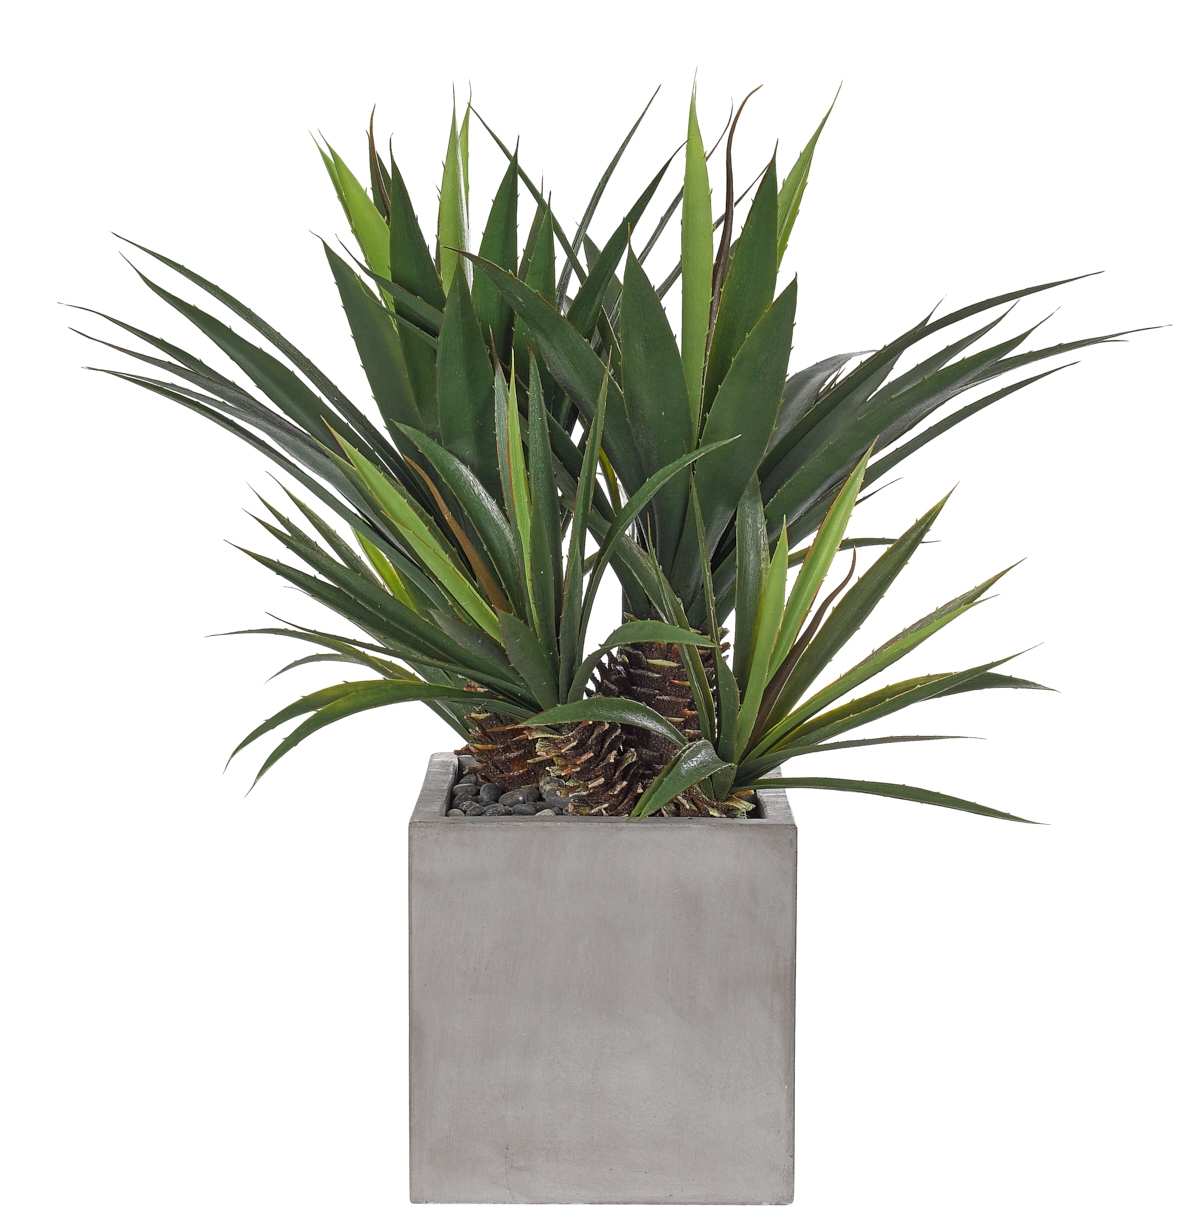 UV rated and suitable for outdoor use! | Aloe Plant, Cube Concrete Finish, 28wx28dx29h